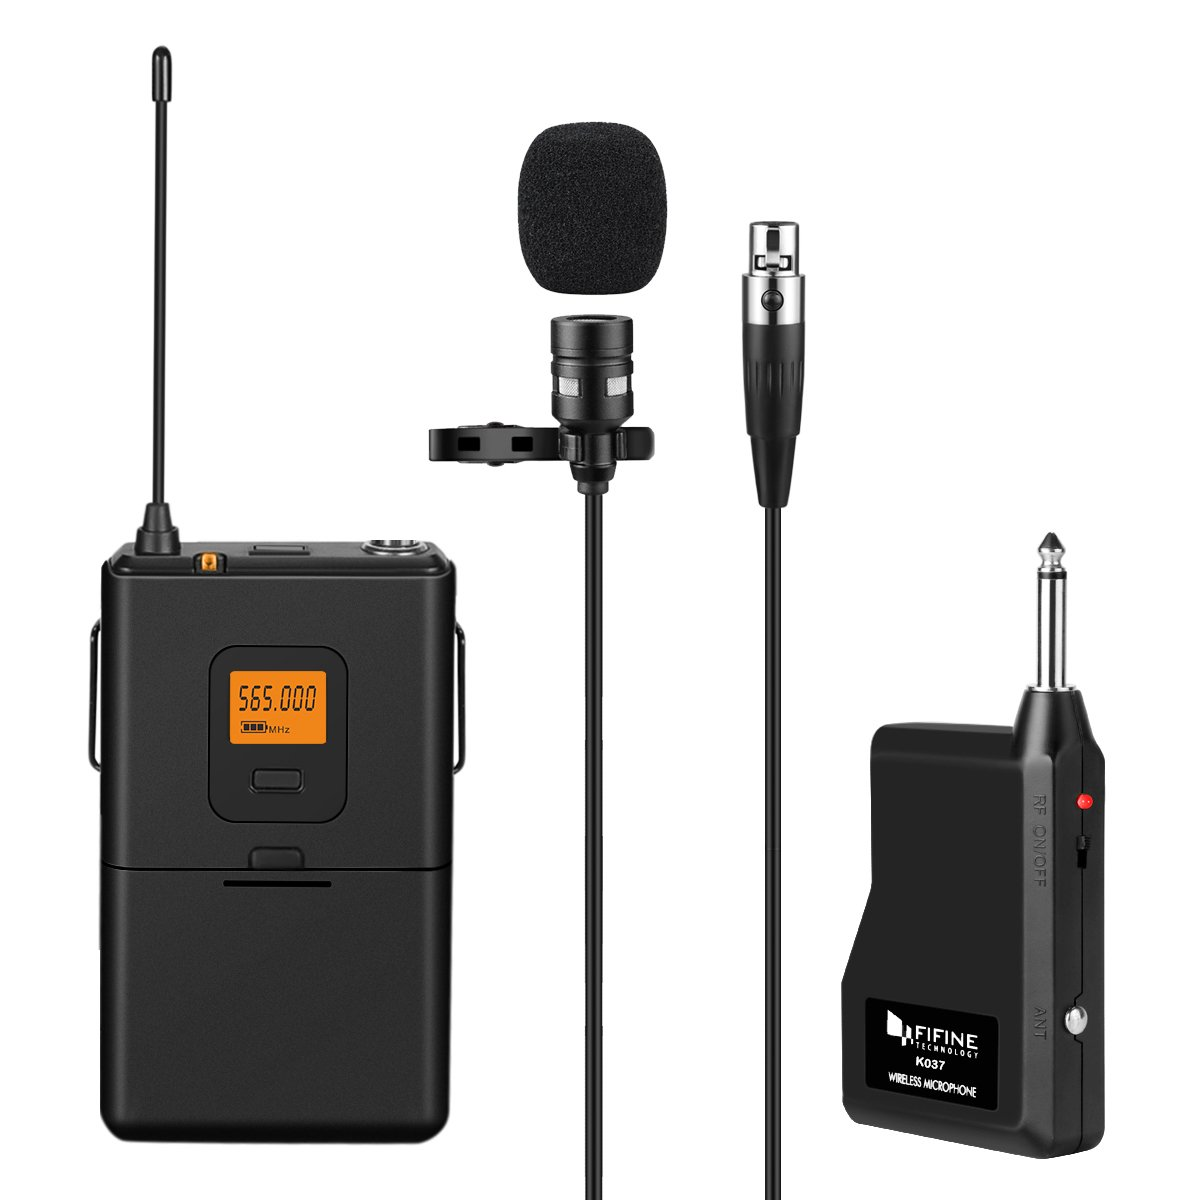 FIFINE 20-Channel UHF Wireless Lavalier Lapel Microphone System with Bodypack Transmitter, Mini XLR Female Lapel Mic and Portable Receiver, Quarter Inch Output. Perfect for Live Performance-K037 by FIFINE